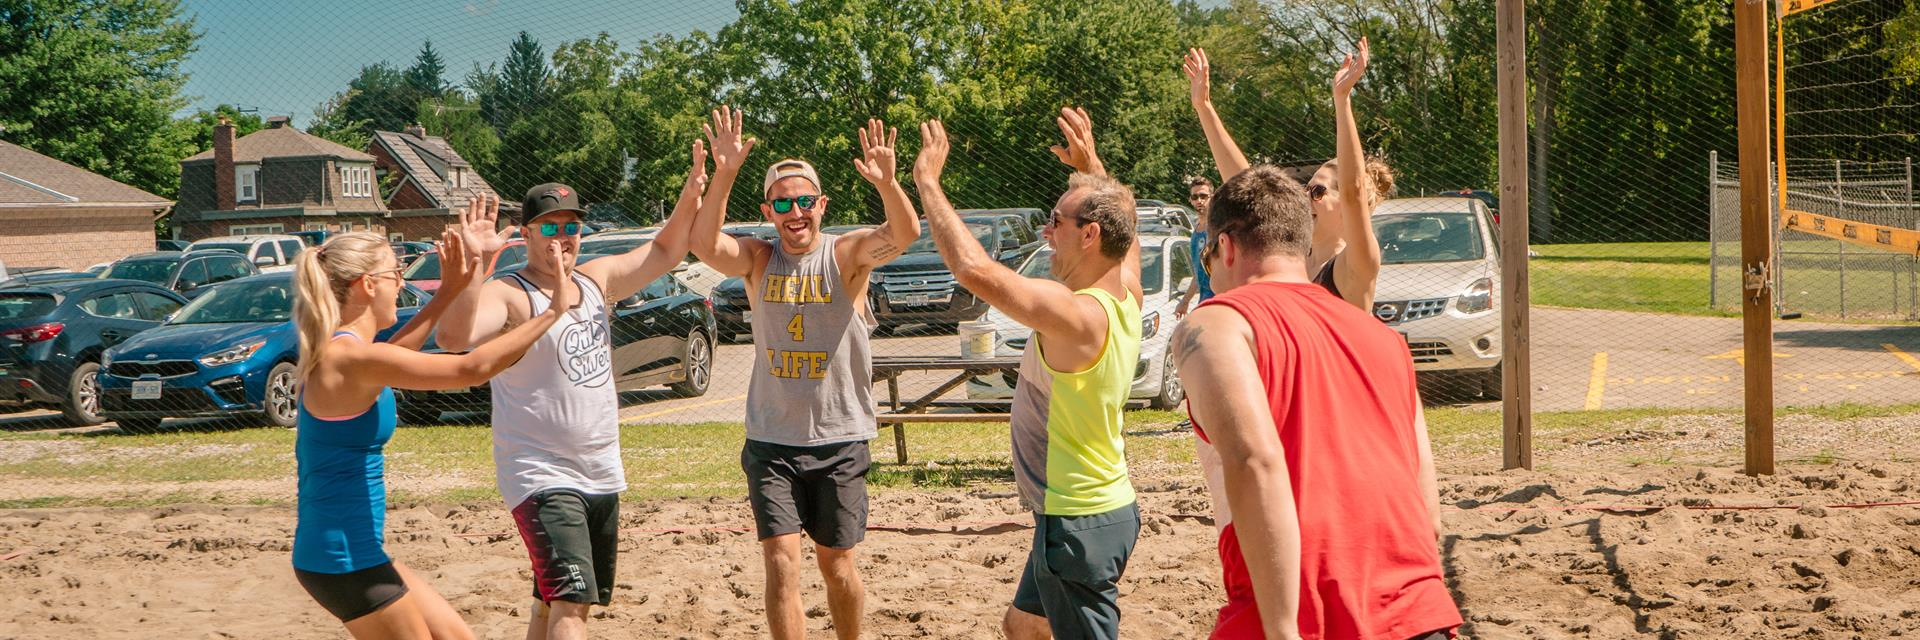 Beach volleyball team giving a high five.